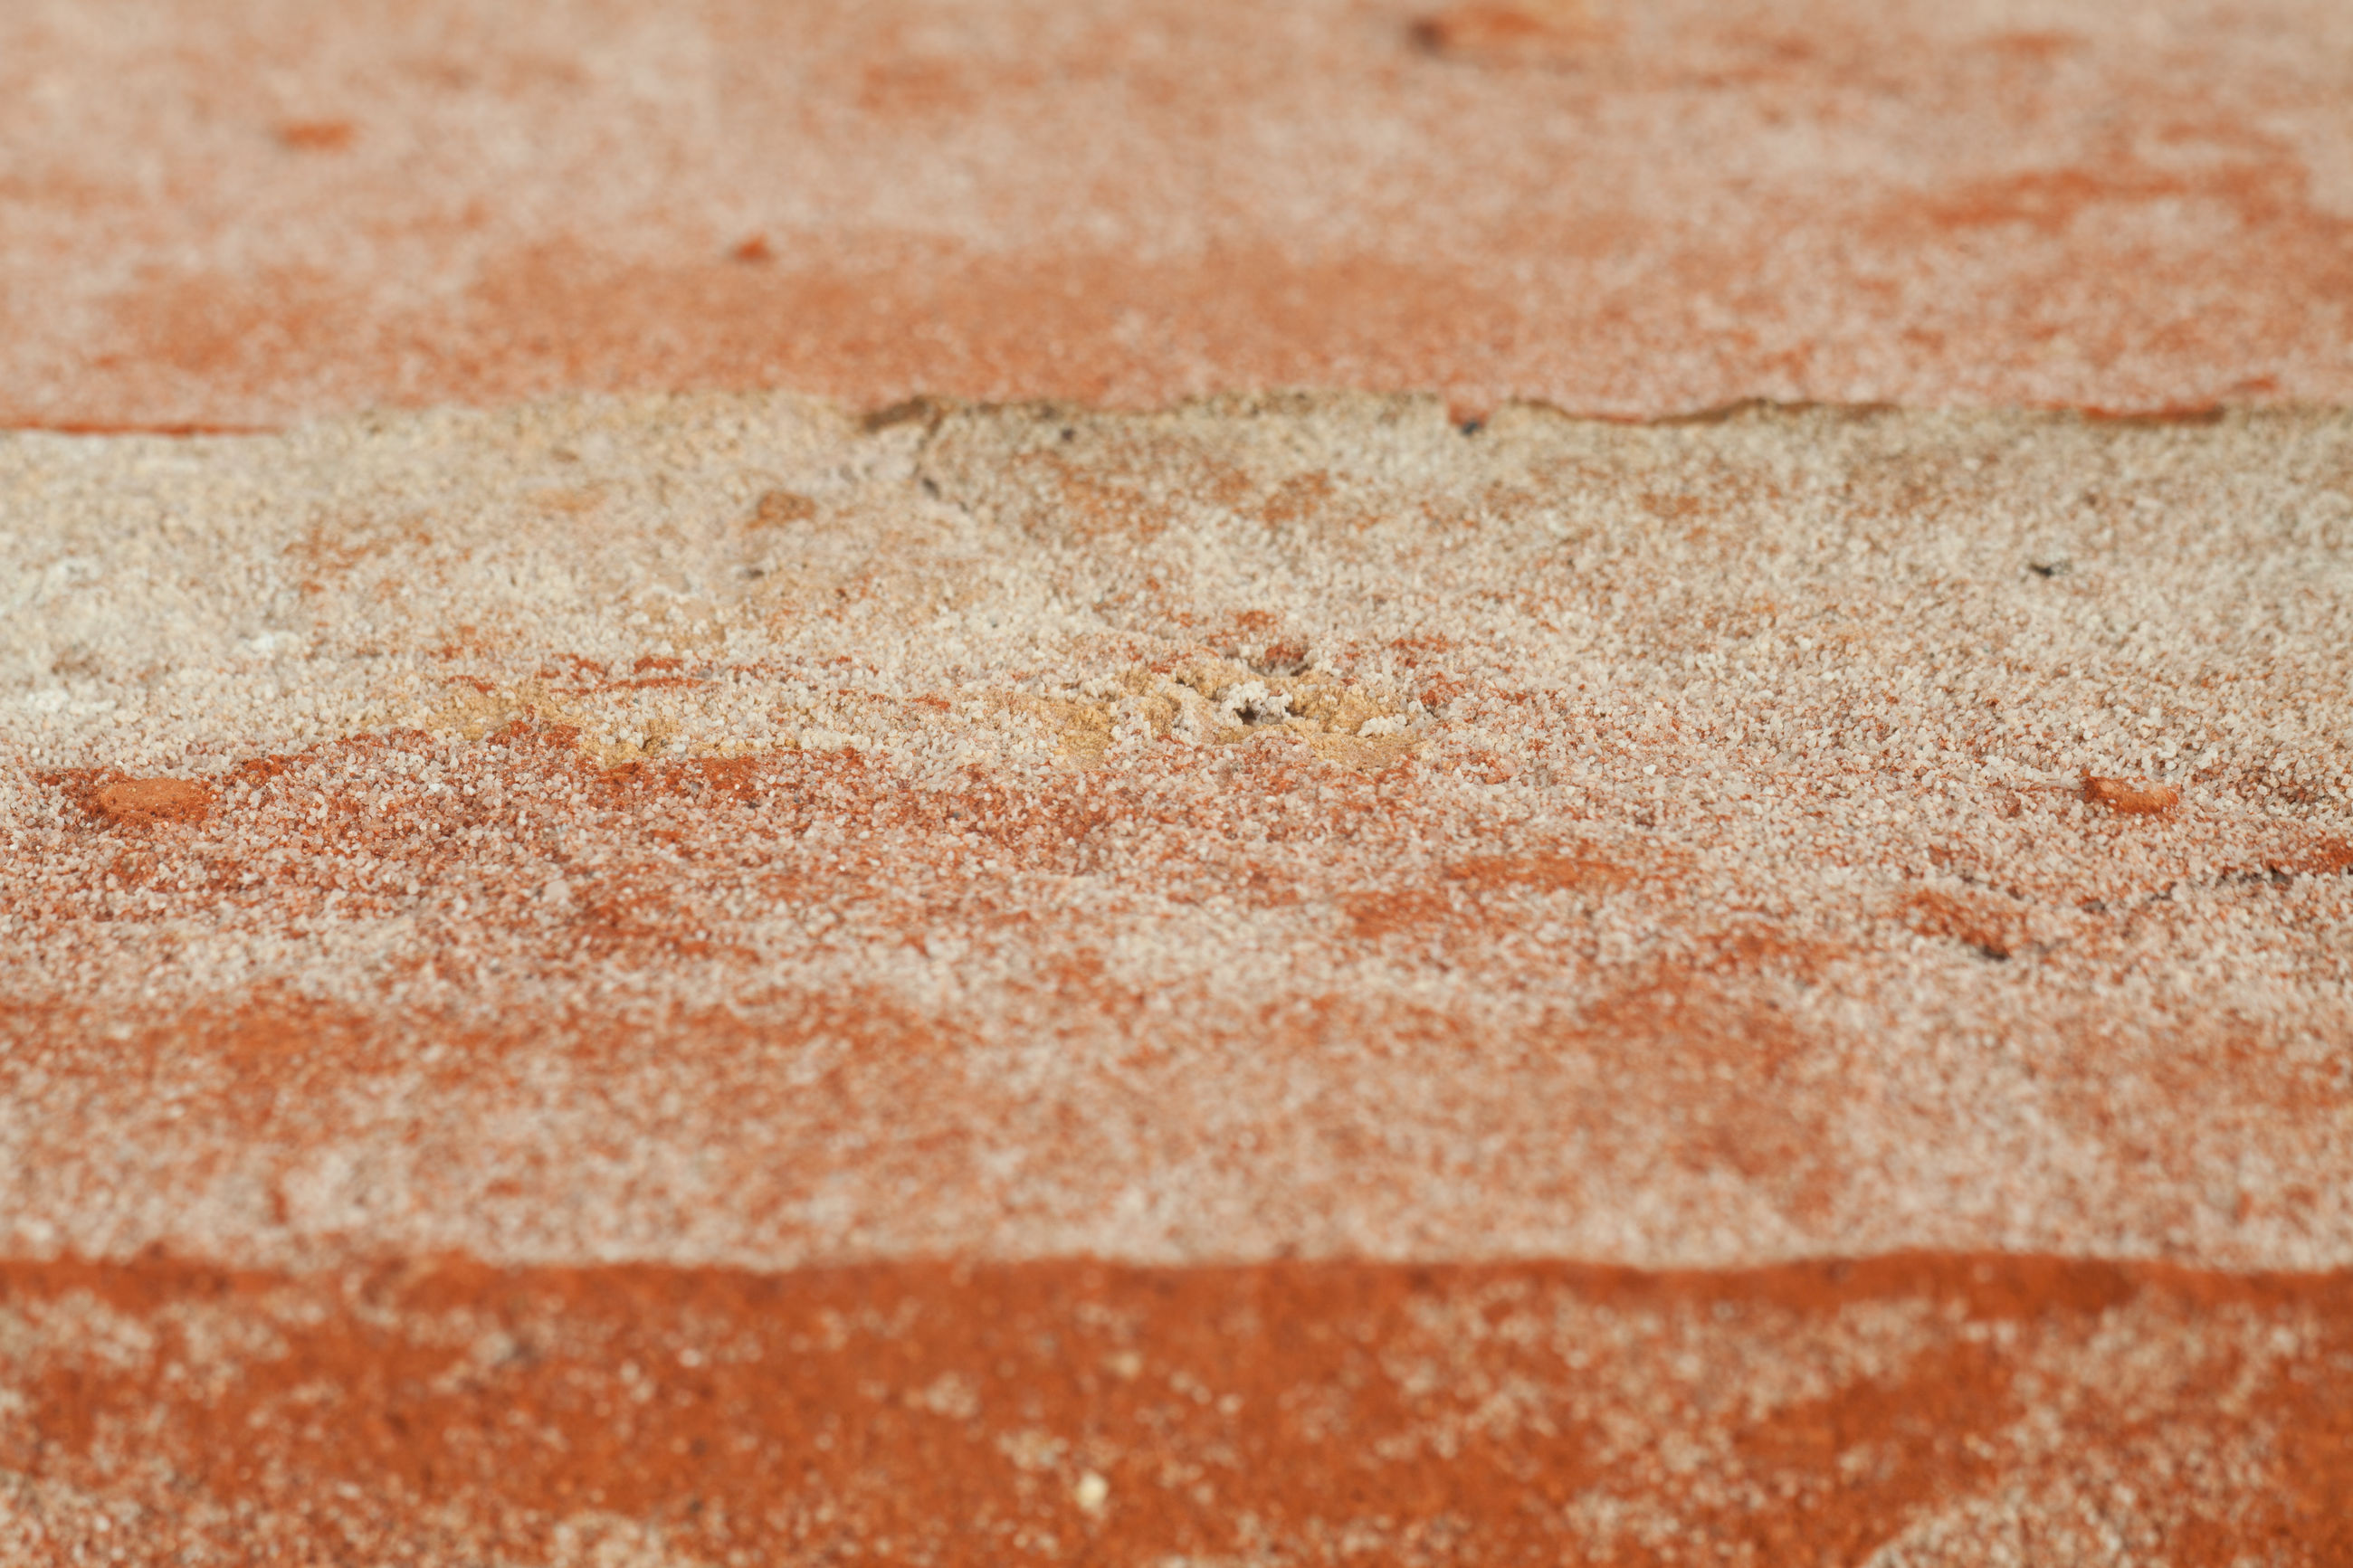 full frame, backgrounds, textured, no people, close-up, pattern, wall - building feature, day, brown, marble, land, sand, built structure, rough, flooring, selective focus, outdoors, nature, marbled effect, red, surface level, concrete, abstract backgrounds